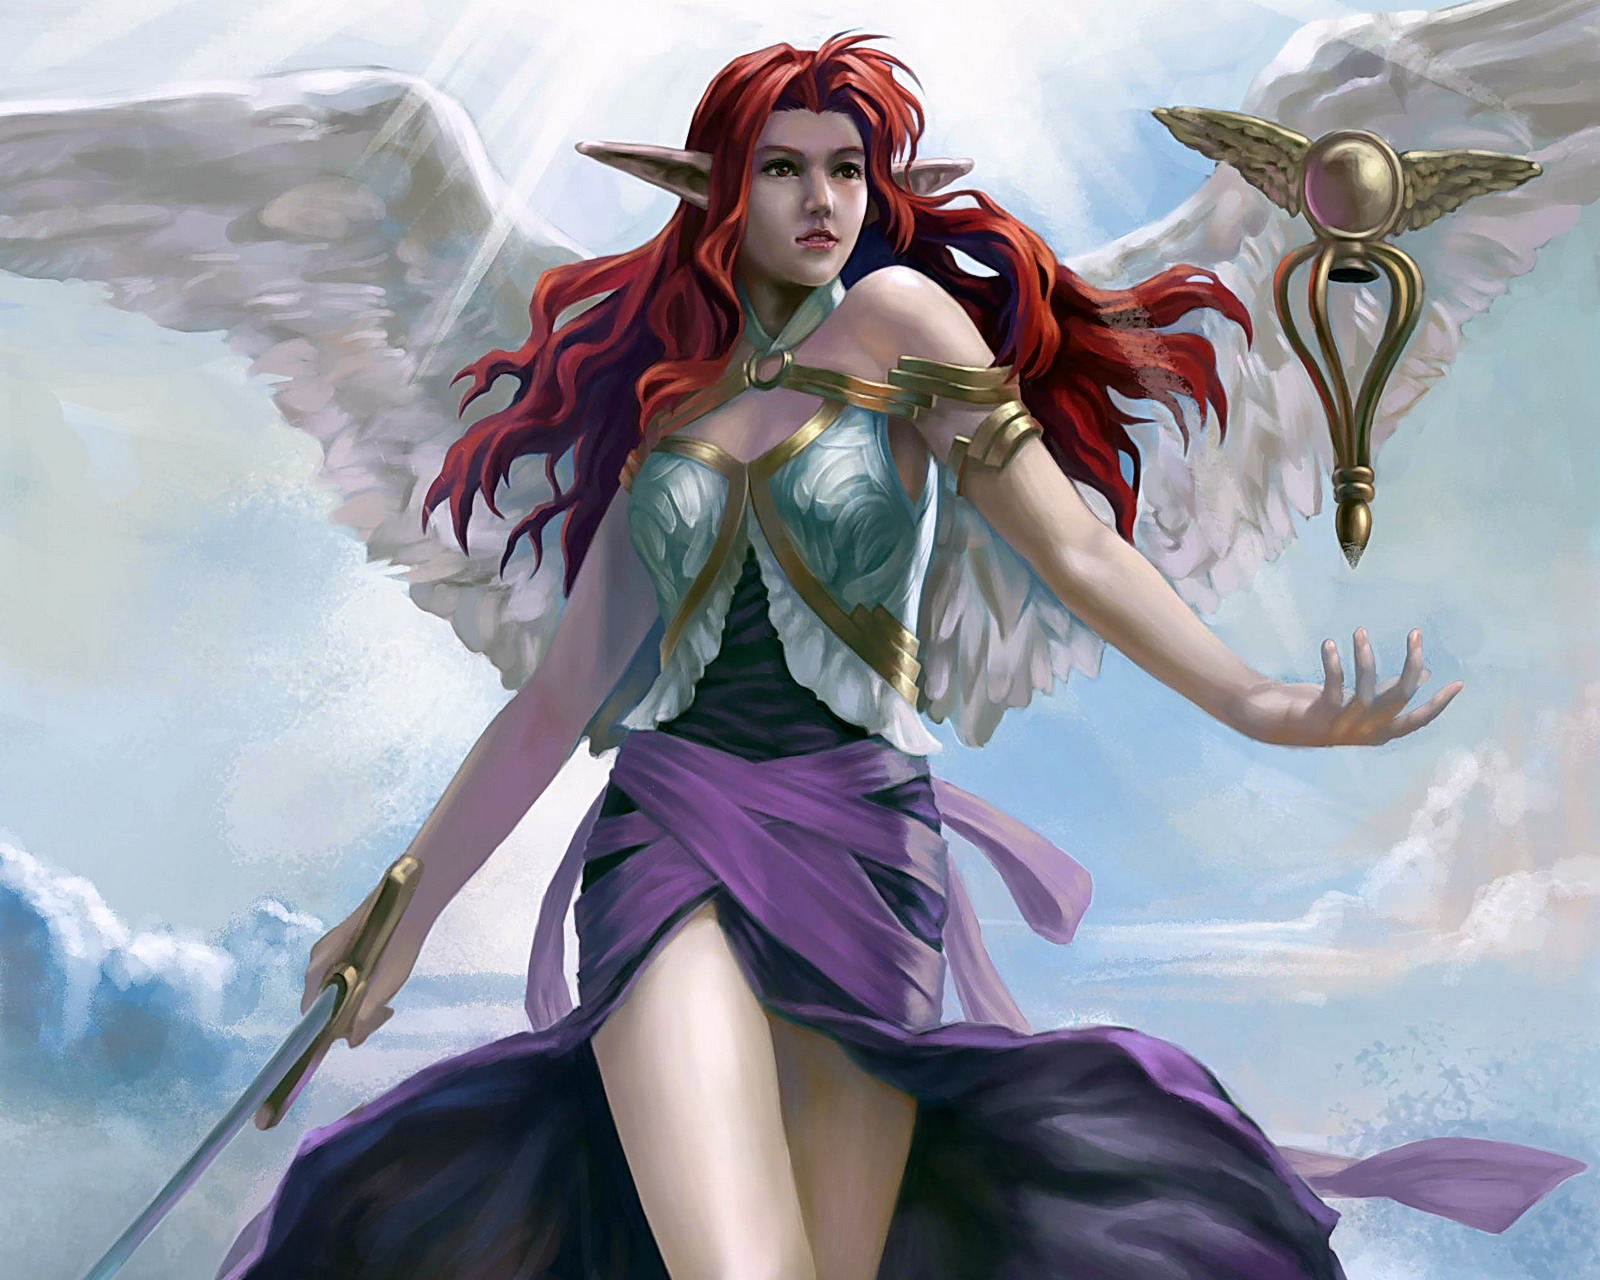 Angels Fantasy Girls Angel Elf Elves Magic Sword Swords